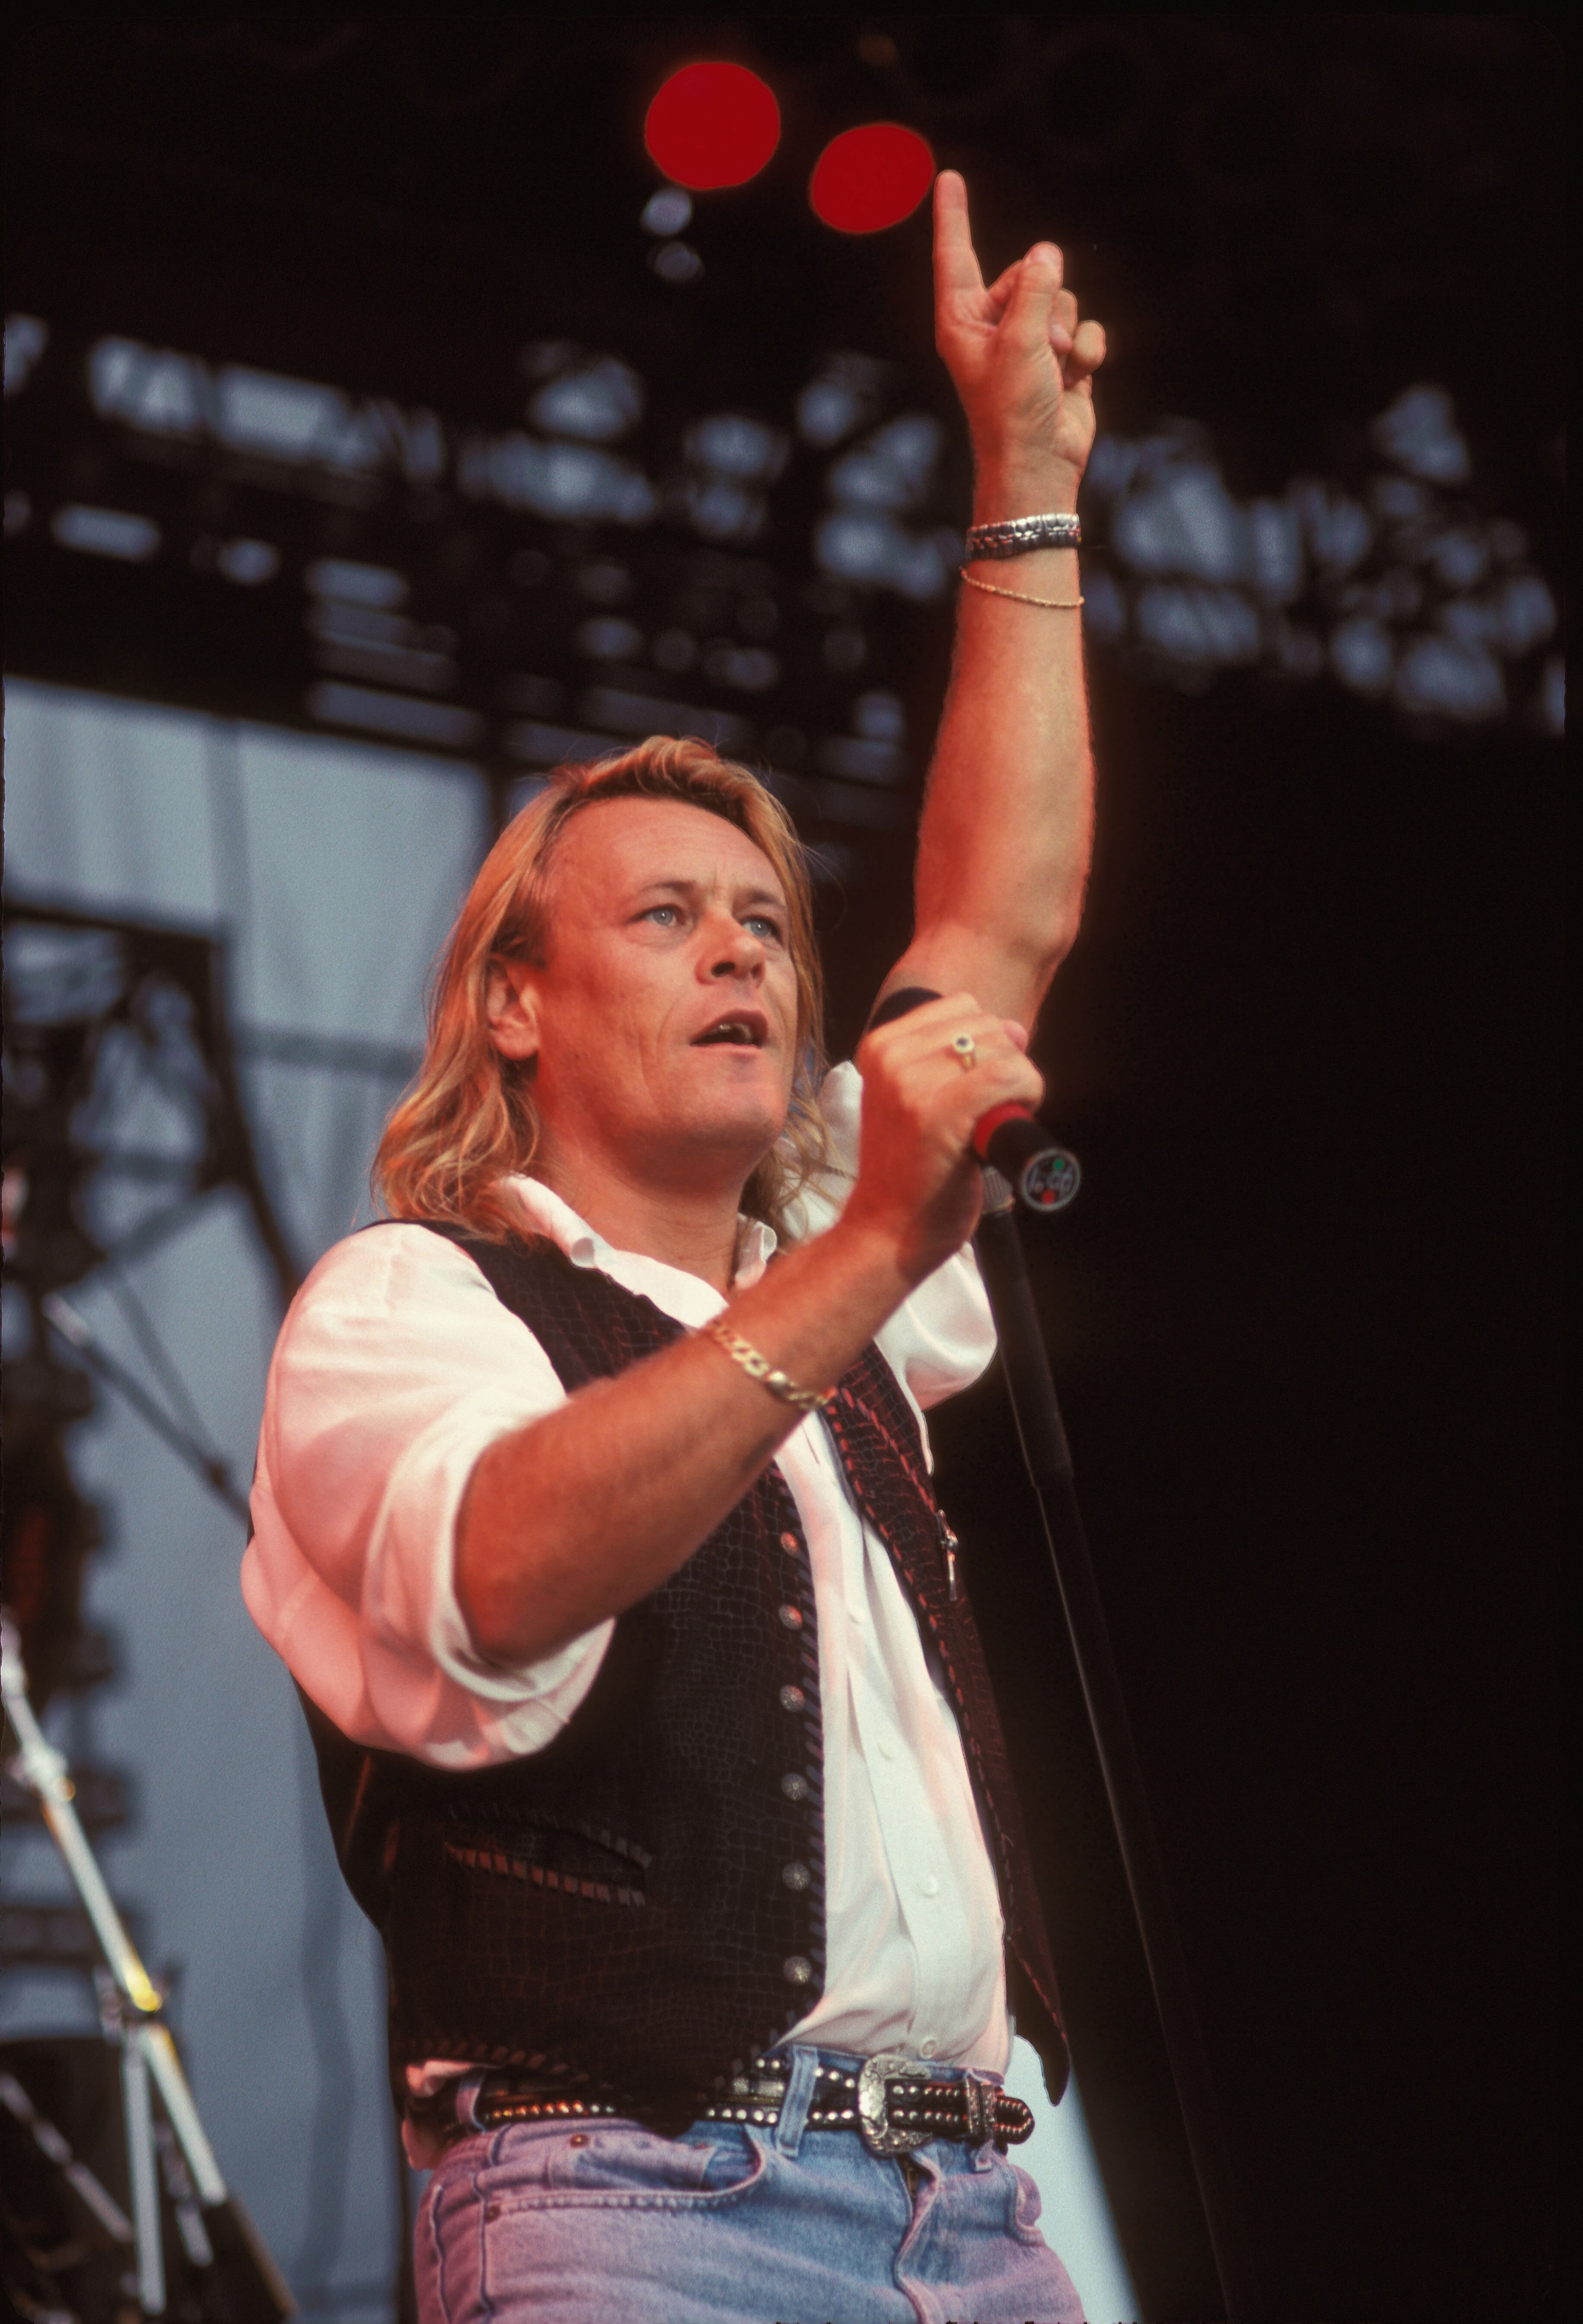 Singer Brian Howe performed on stage during a live concert appearance with Bad Company on July 26, 1990 | Photo: Getty Images